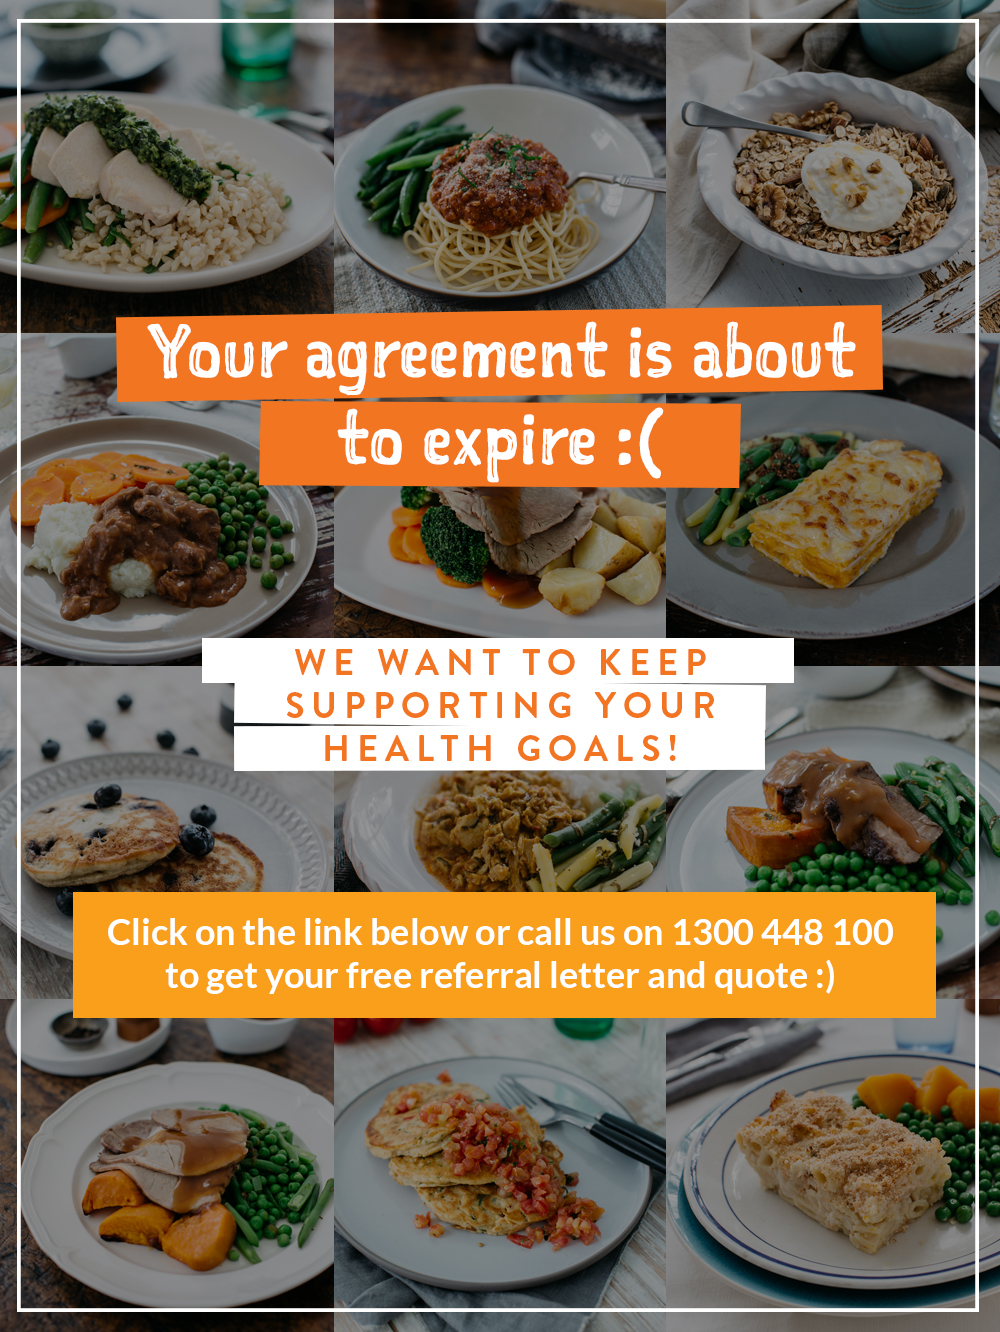 Your agreement is about to expire.jpg